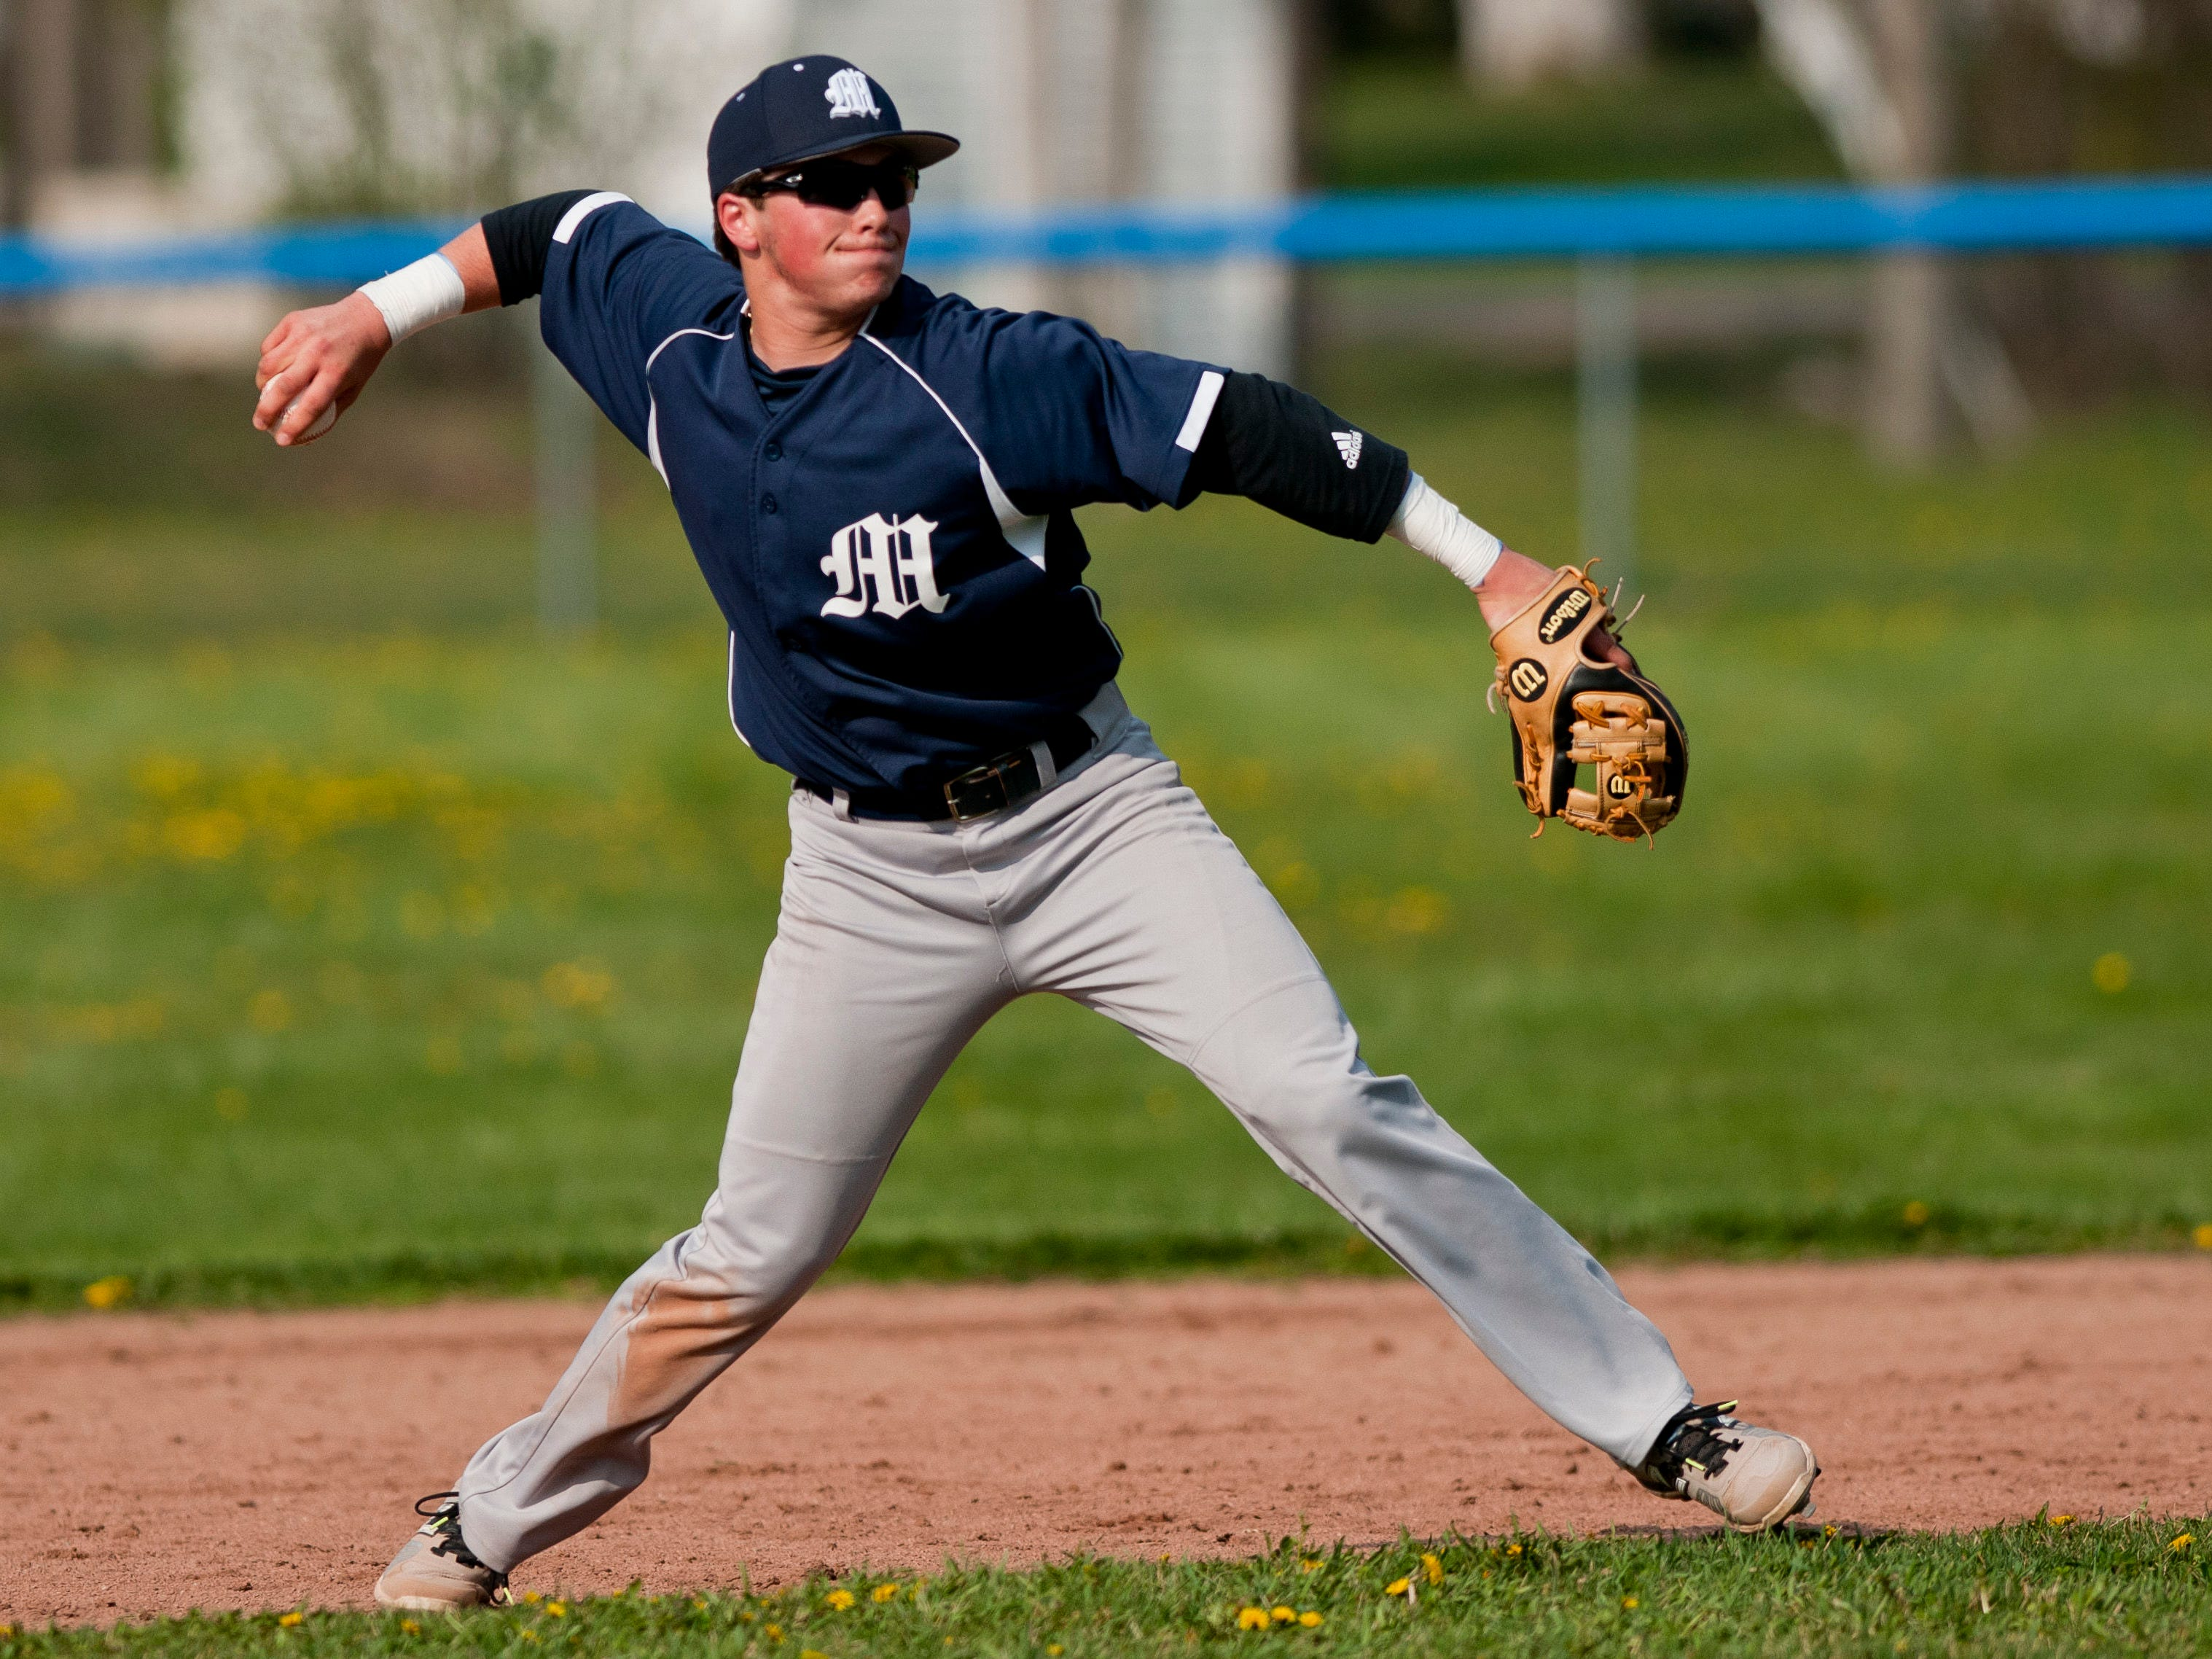 Marysville's Phill Griffor throws the ball to first during a baseball game Wednesday, May 6, 2015 at St. Clair High School.